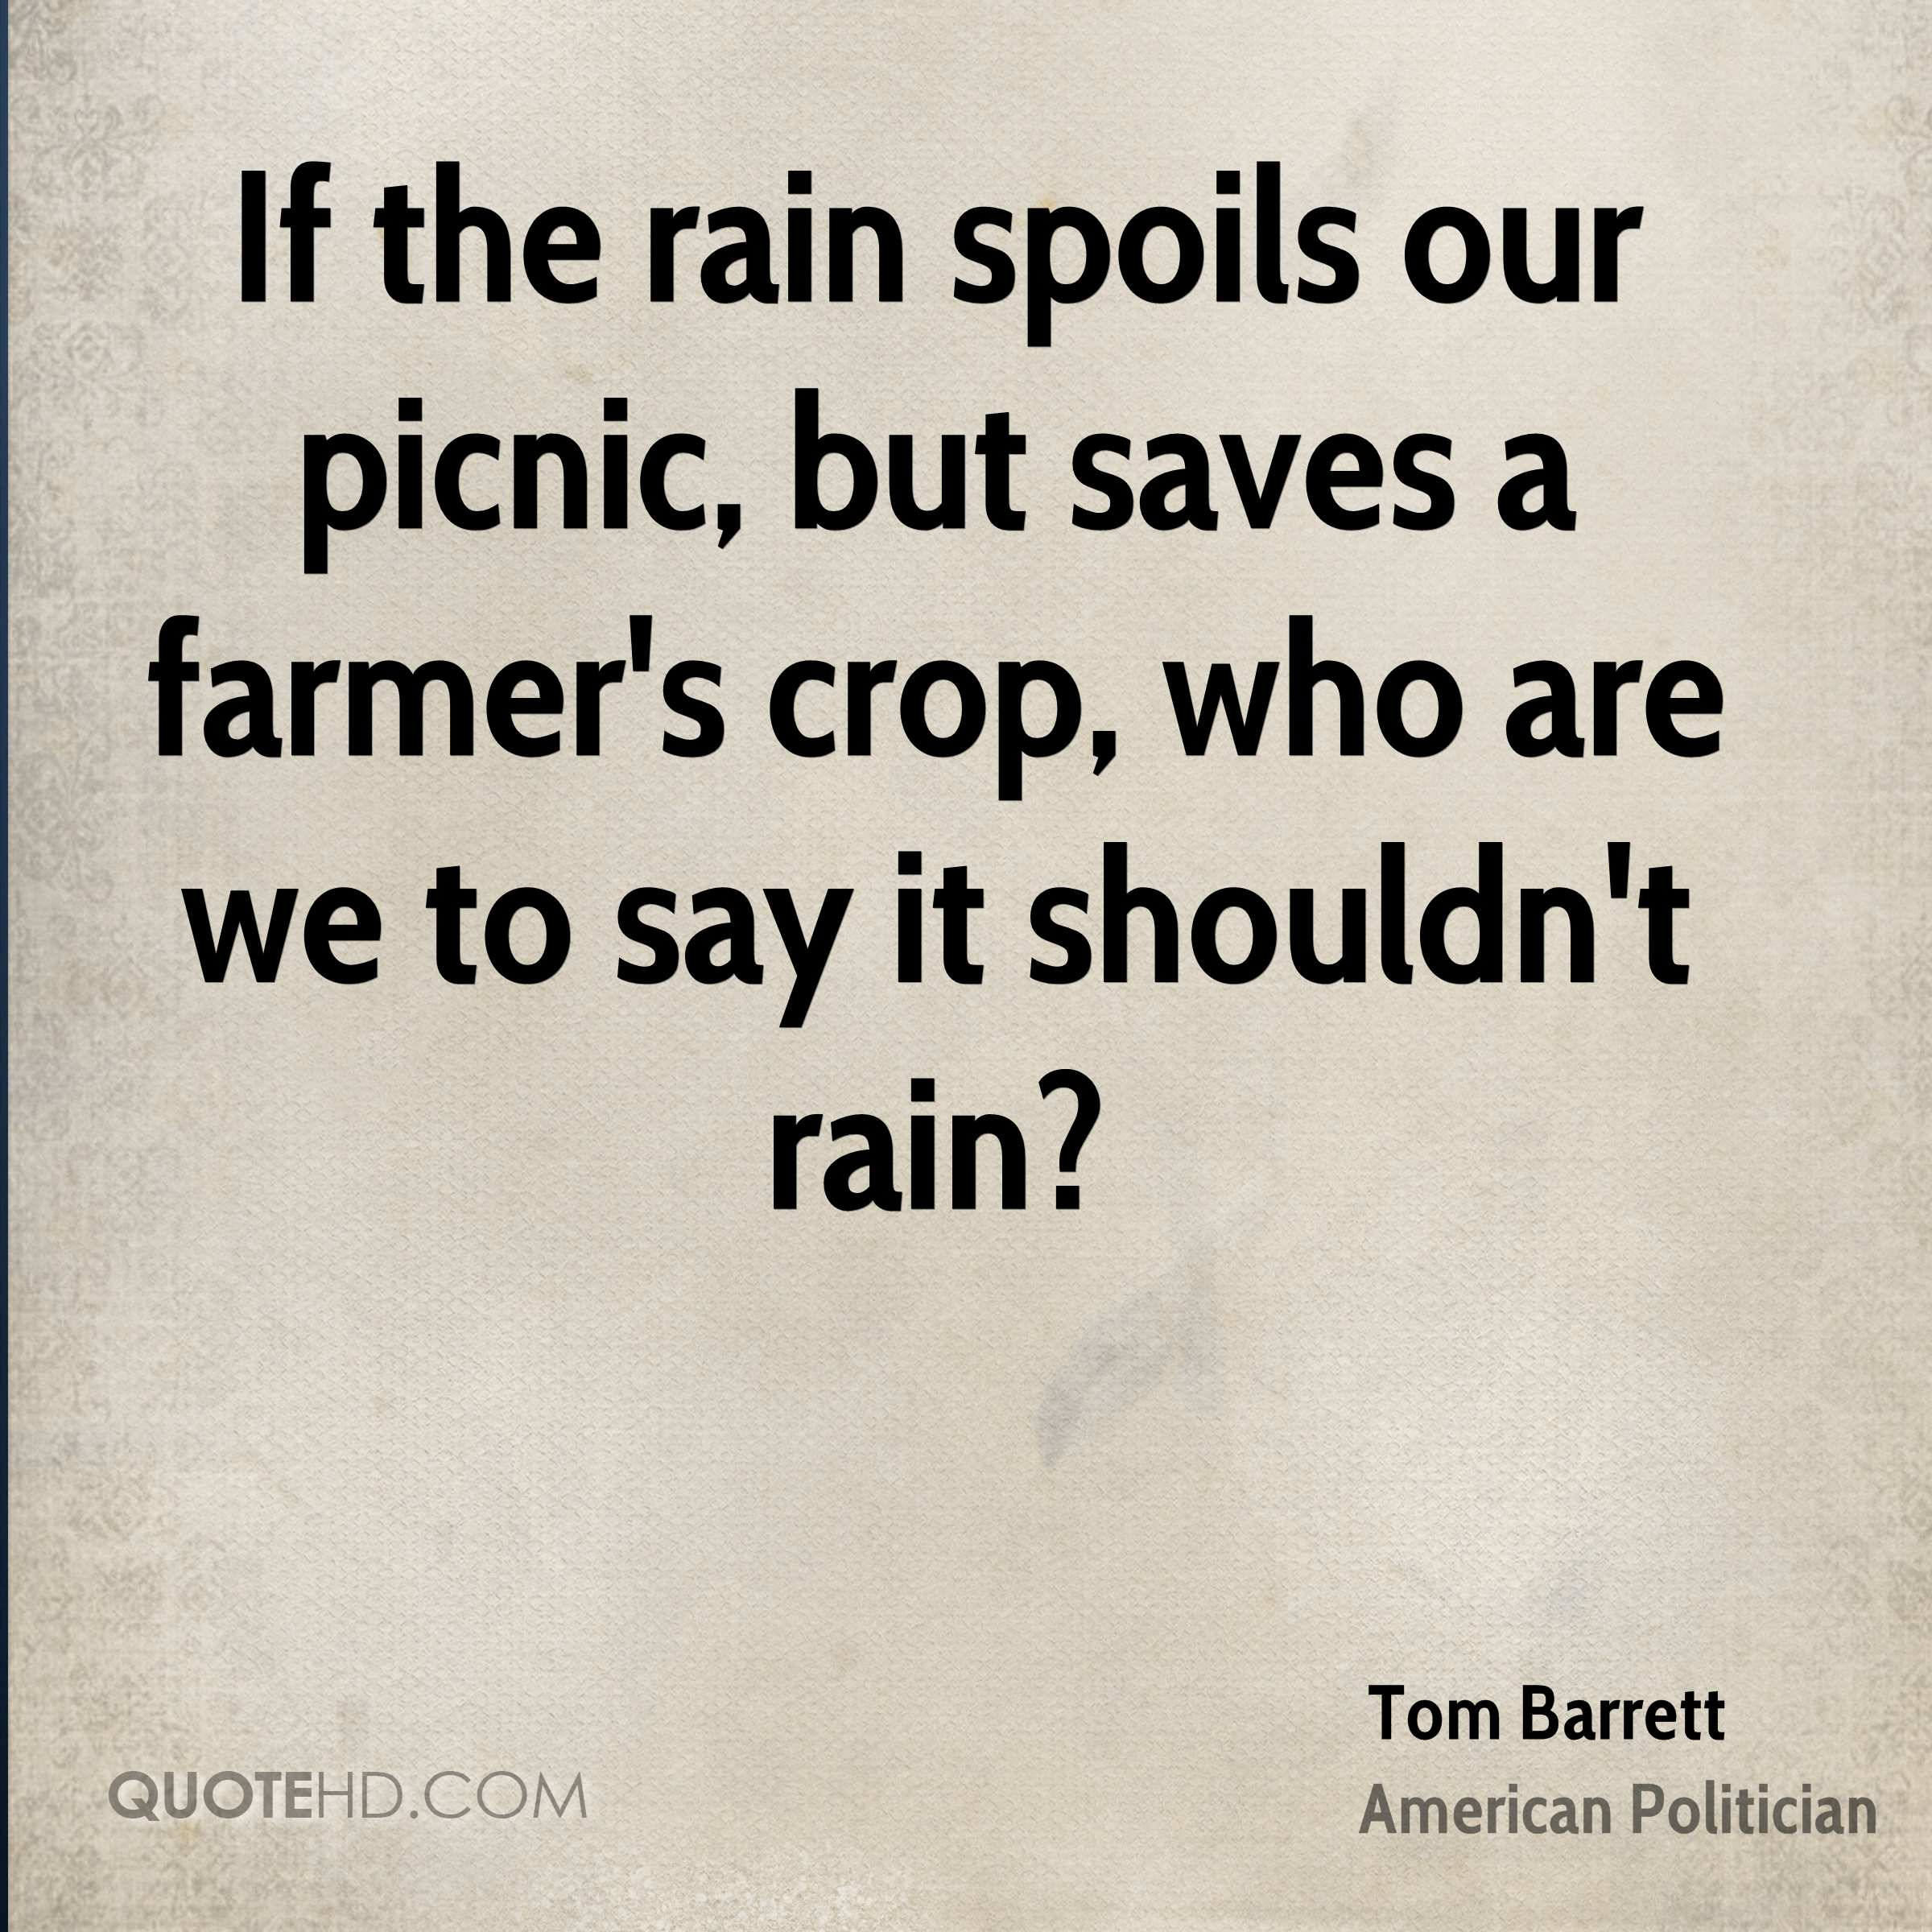 If the rain spoils our picnic, but saves a farmer's crop, who are we to say it shouldn't rain?